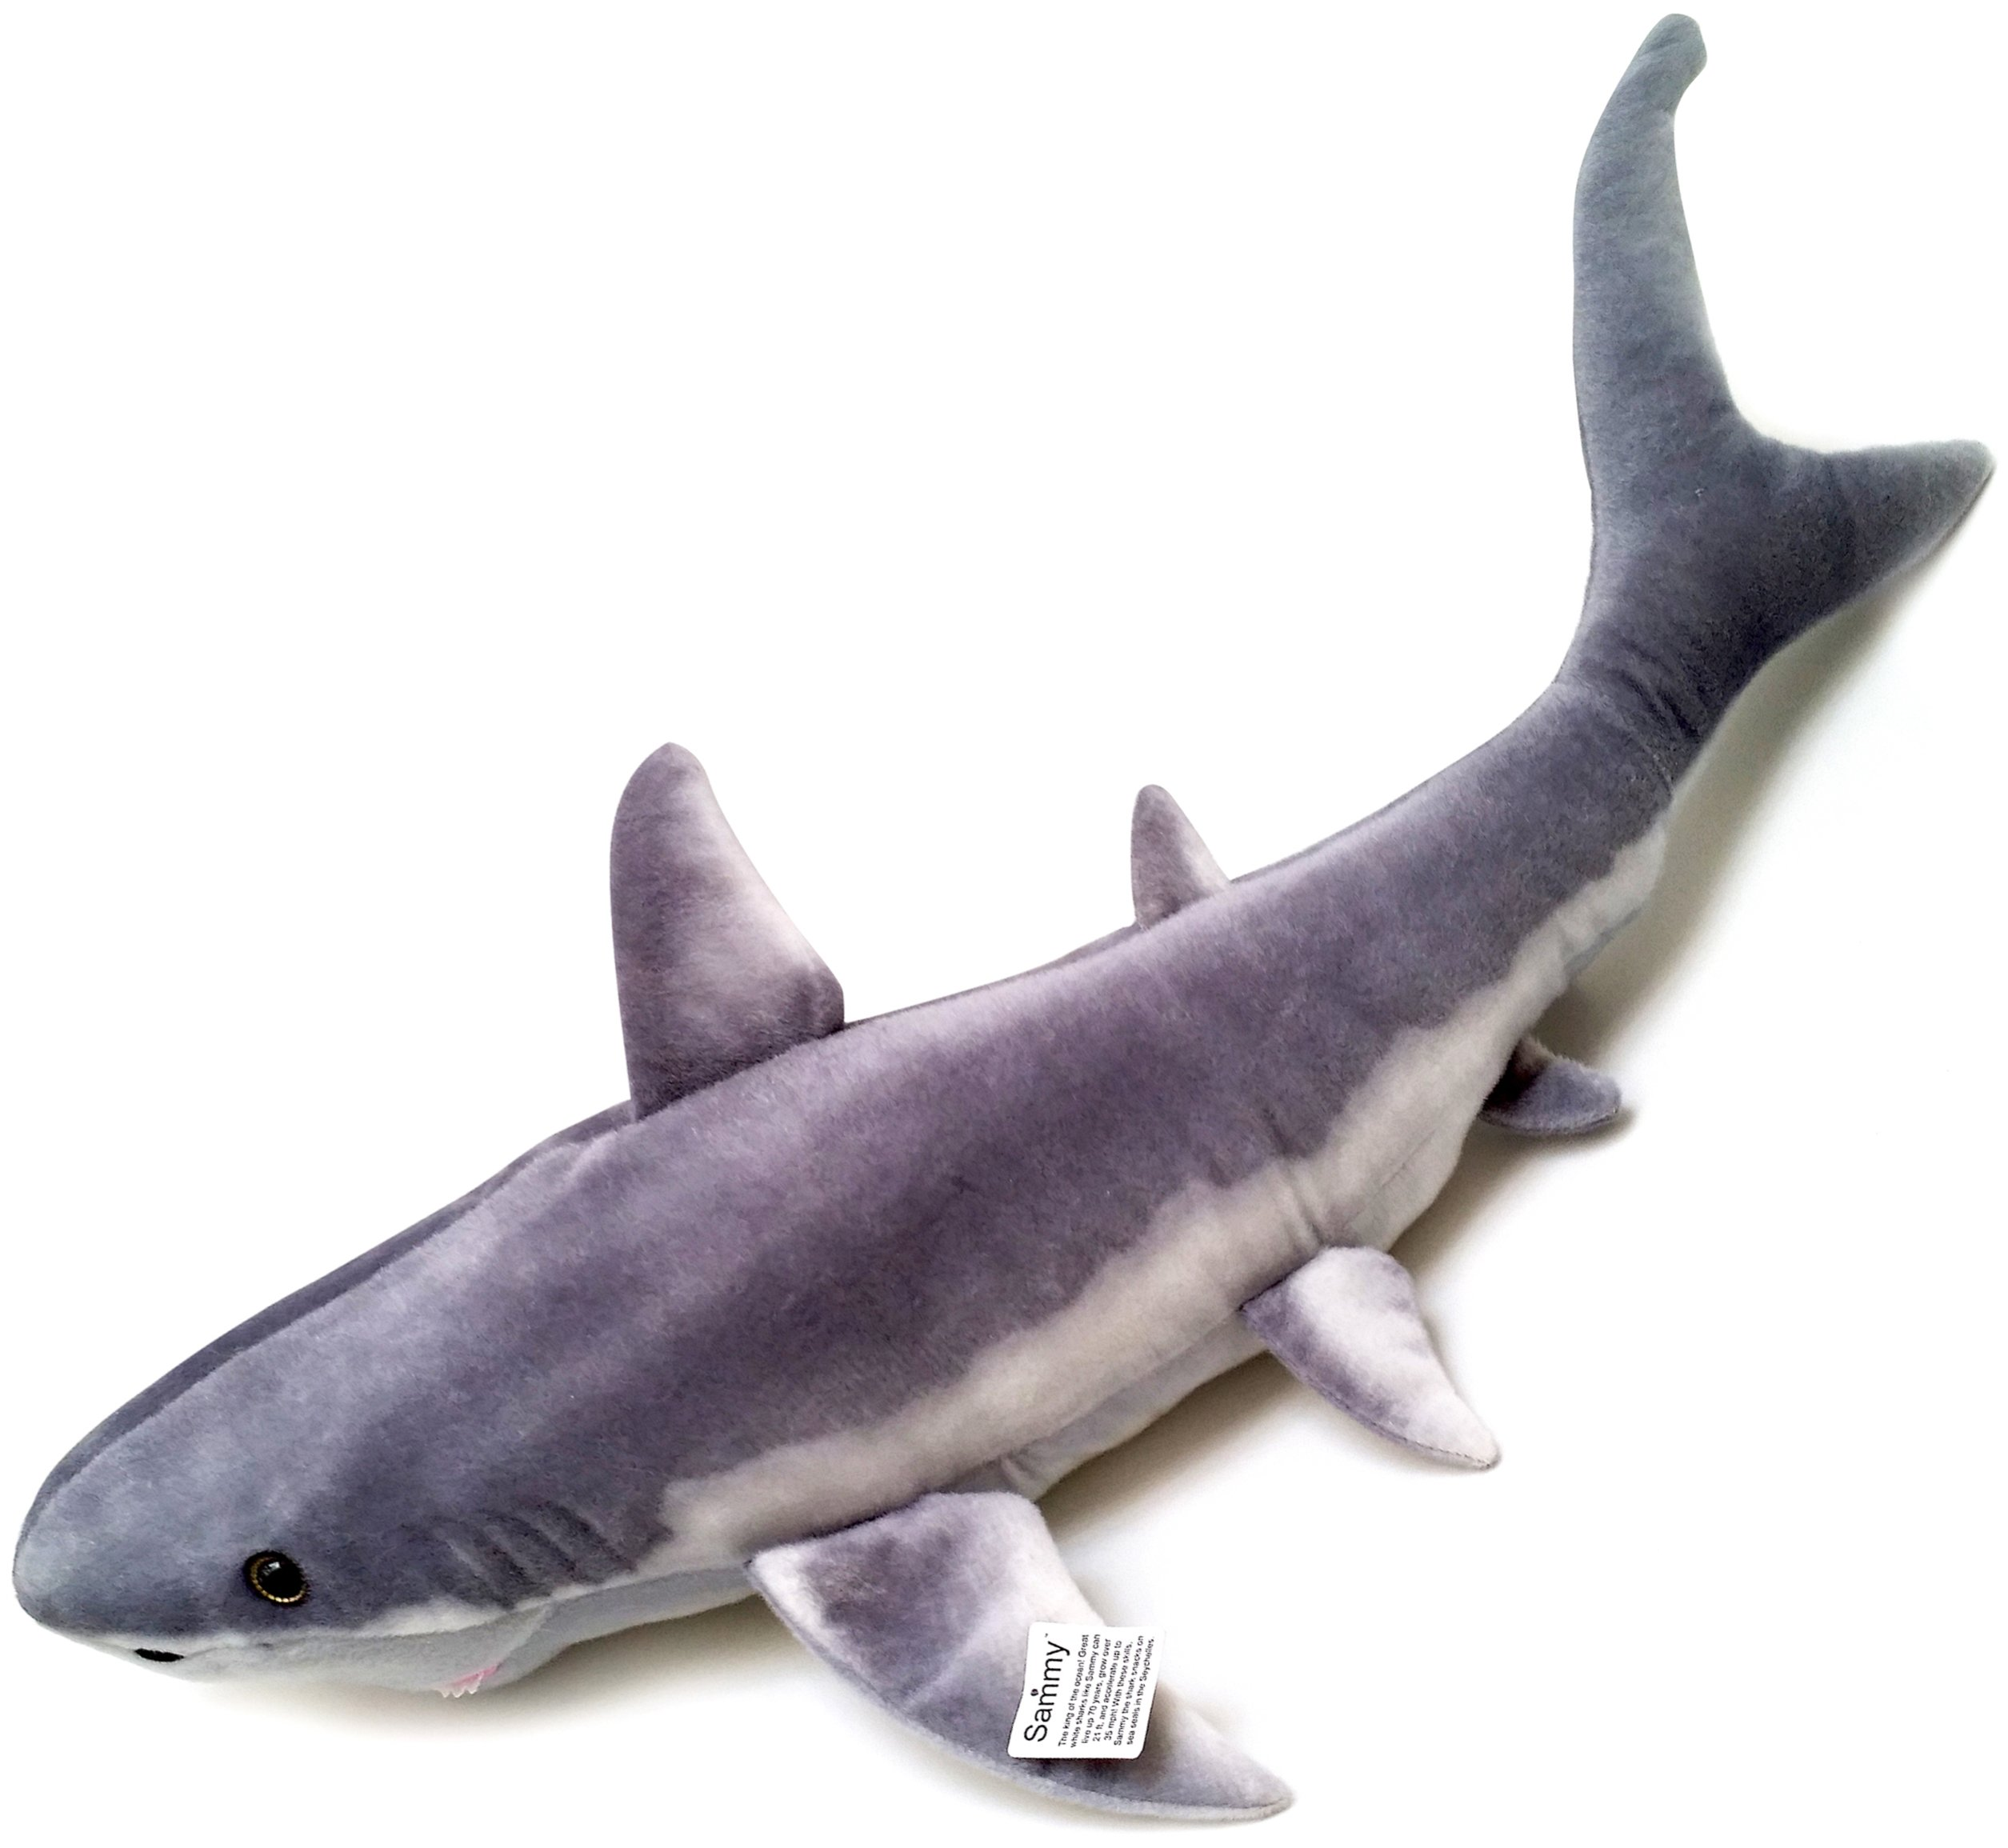 Viahart 37 Large Great White Shark Stuffed Animal Plush Sammy The